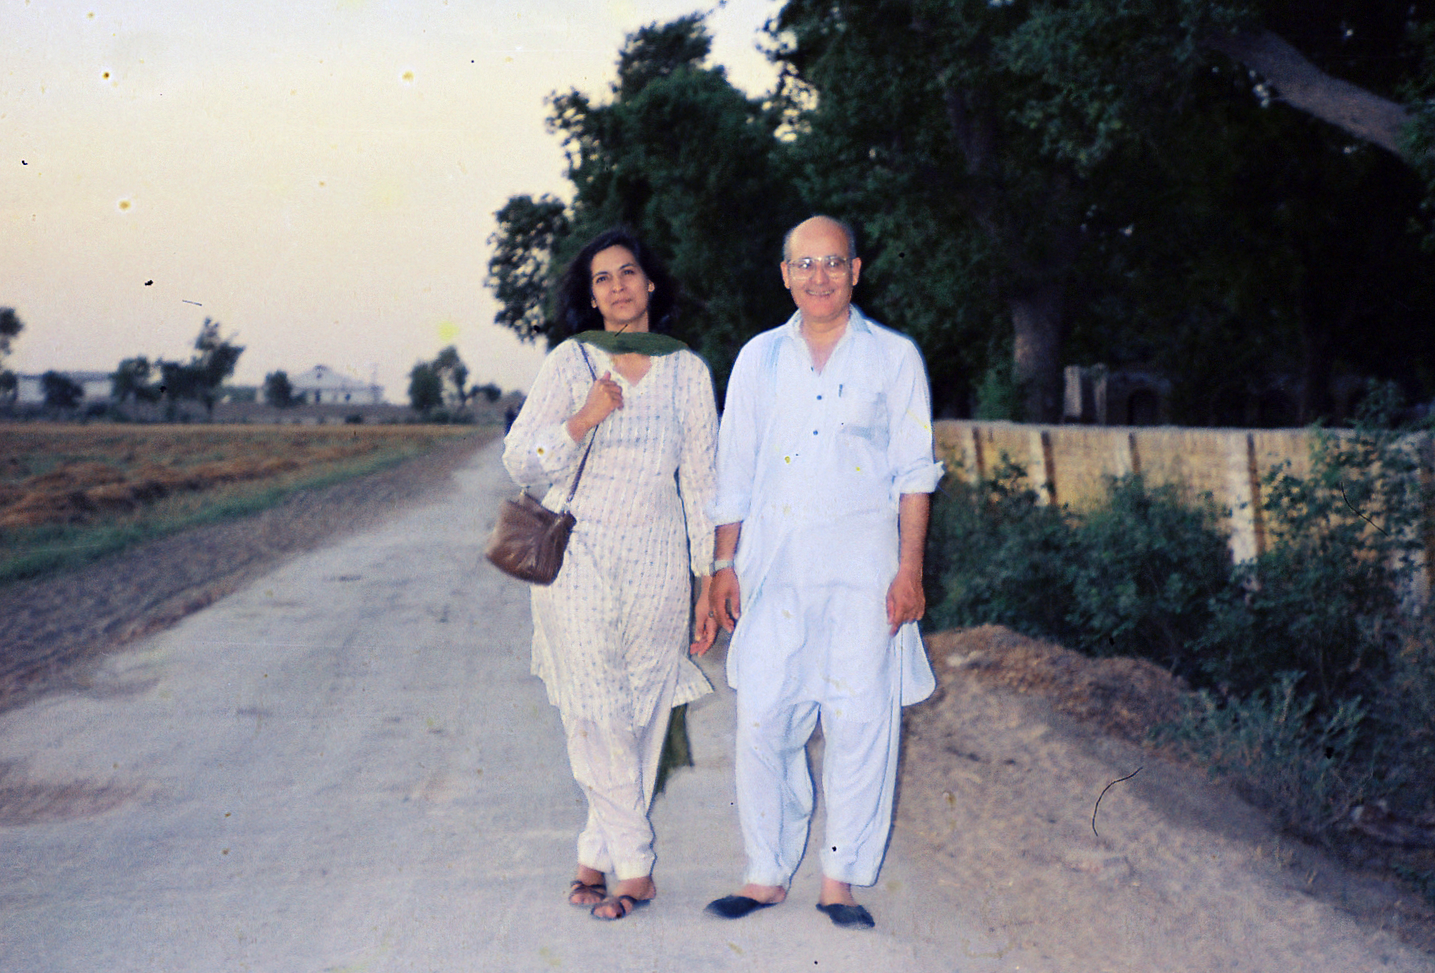 Ami and Abu, some time in the 1980s.